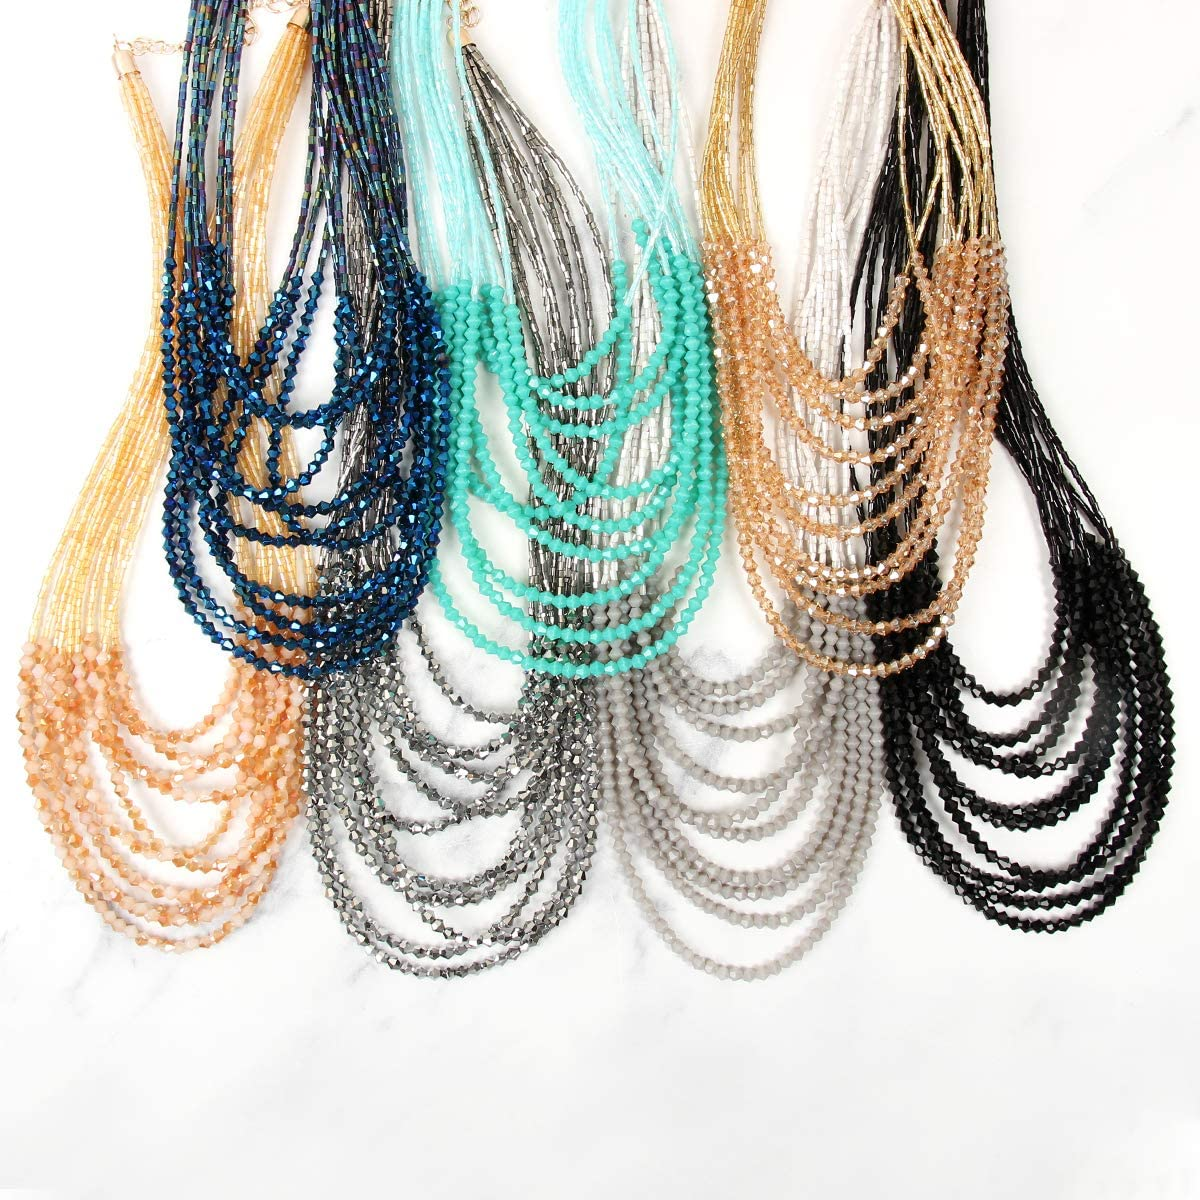 RIAH FASHION Sparkly Crystal Bead Statement Necklace - Handmade Knot Versatile 60